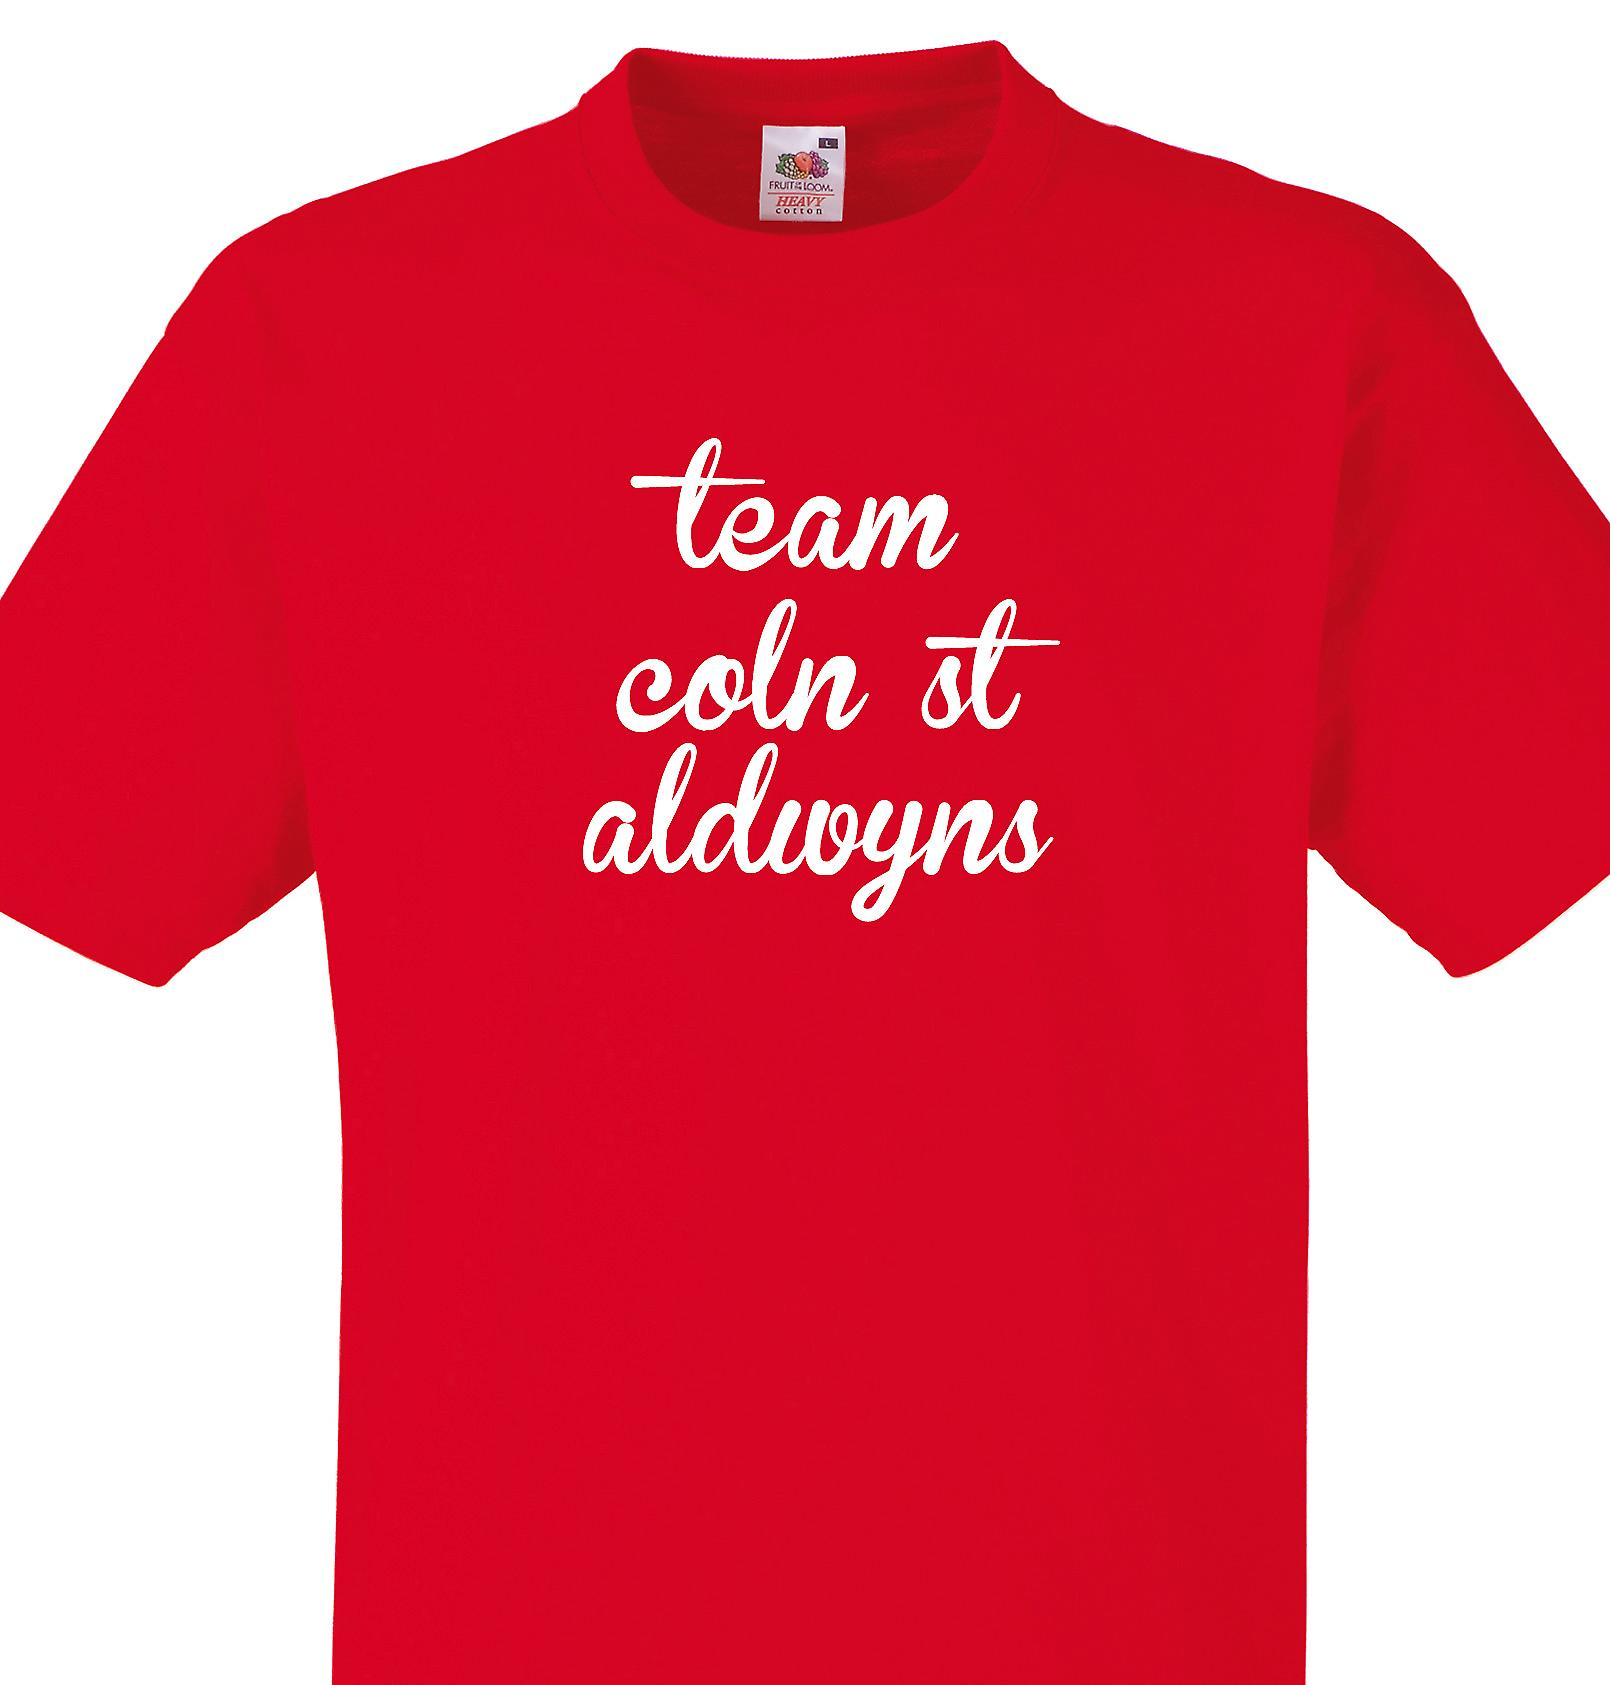 Team Coln st aldwyns Red T shirt